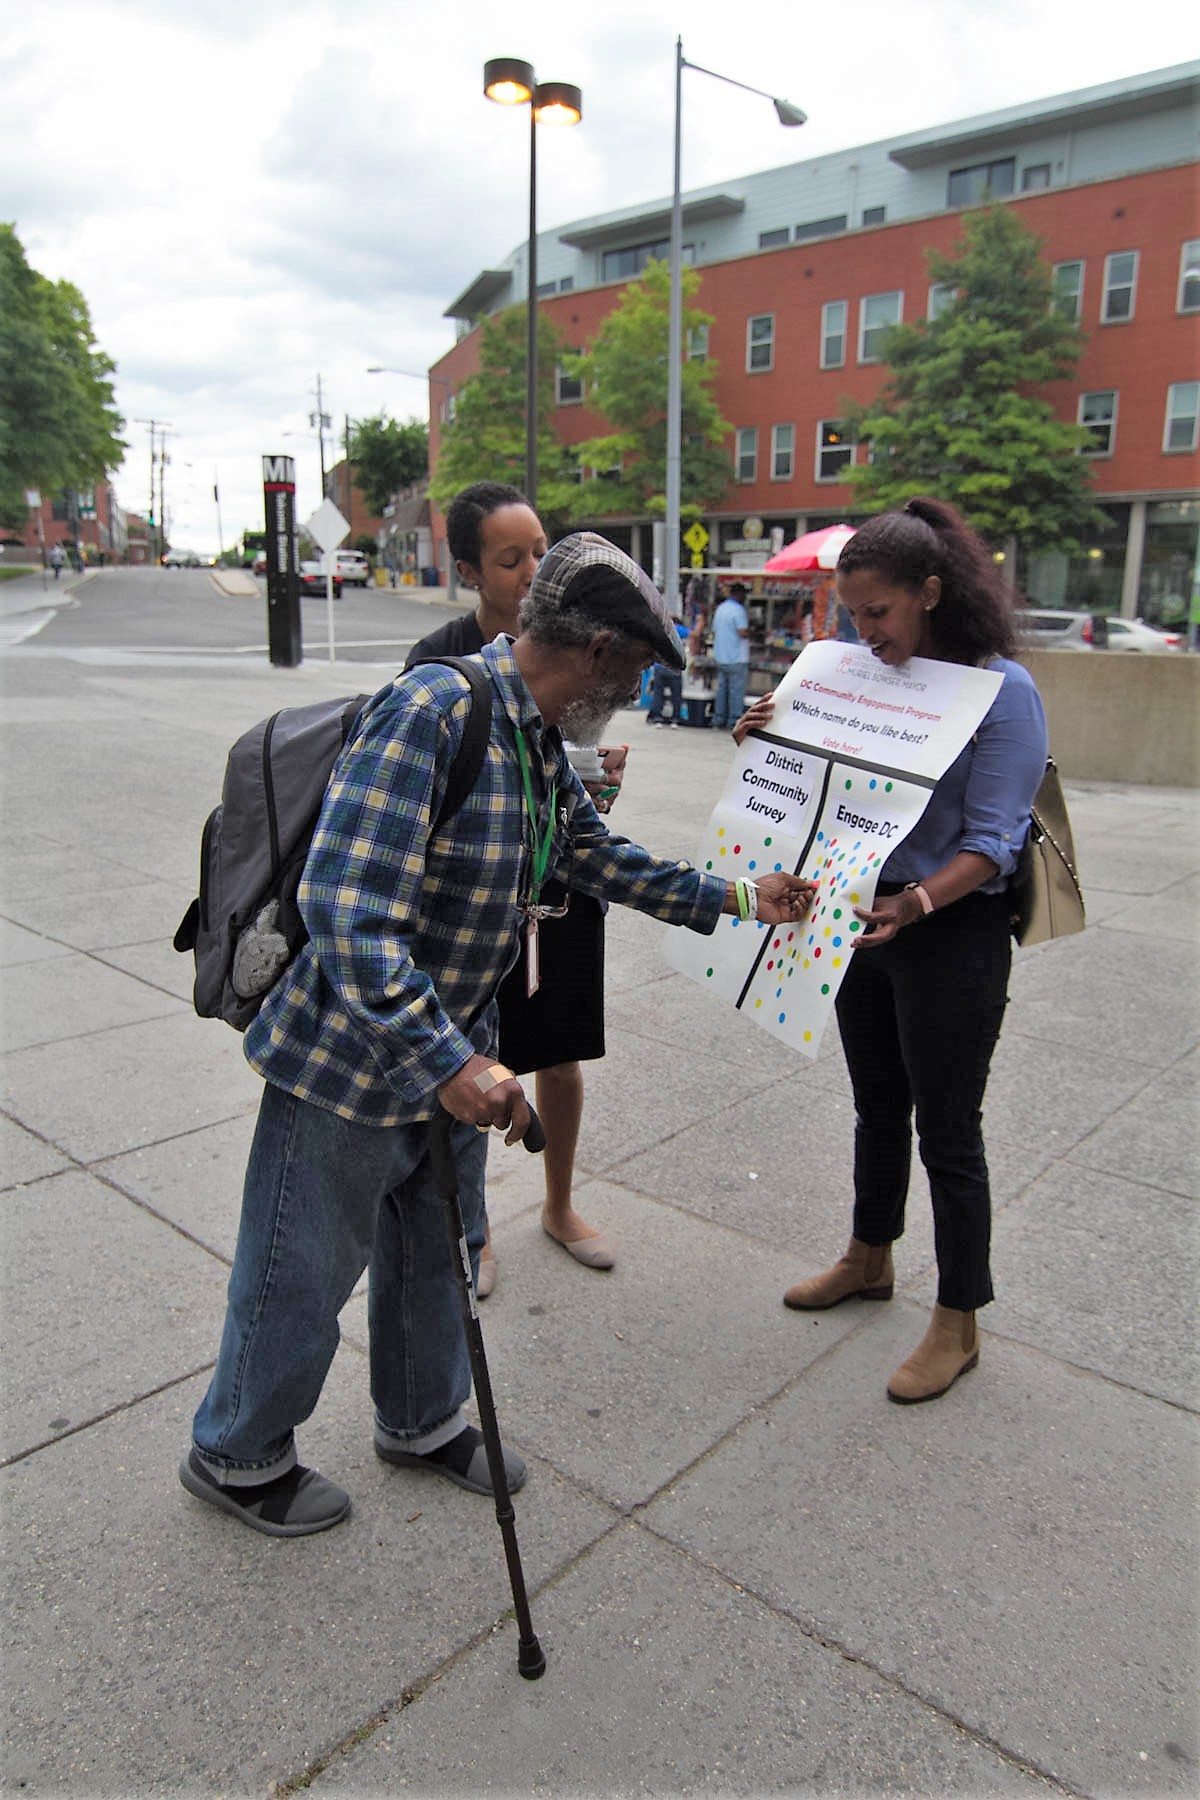 Lab team members outside a Metro station gathering resident feedback on what to name the survey platform (Credit: The Lab @ DC)